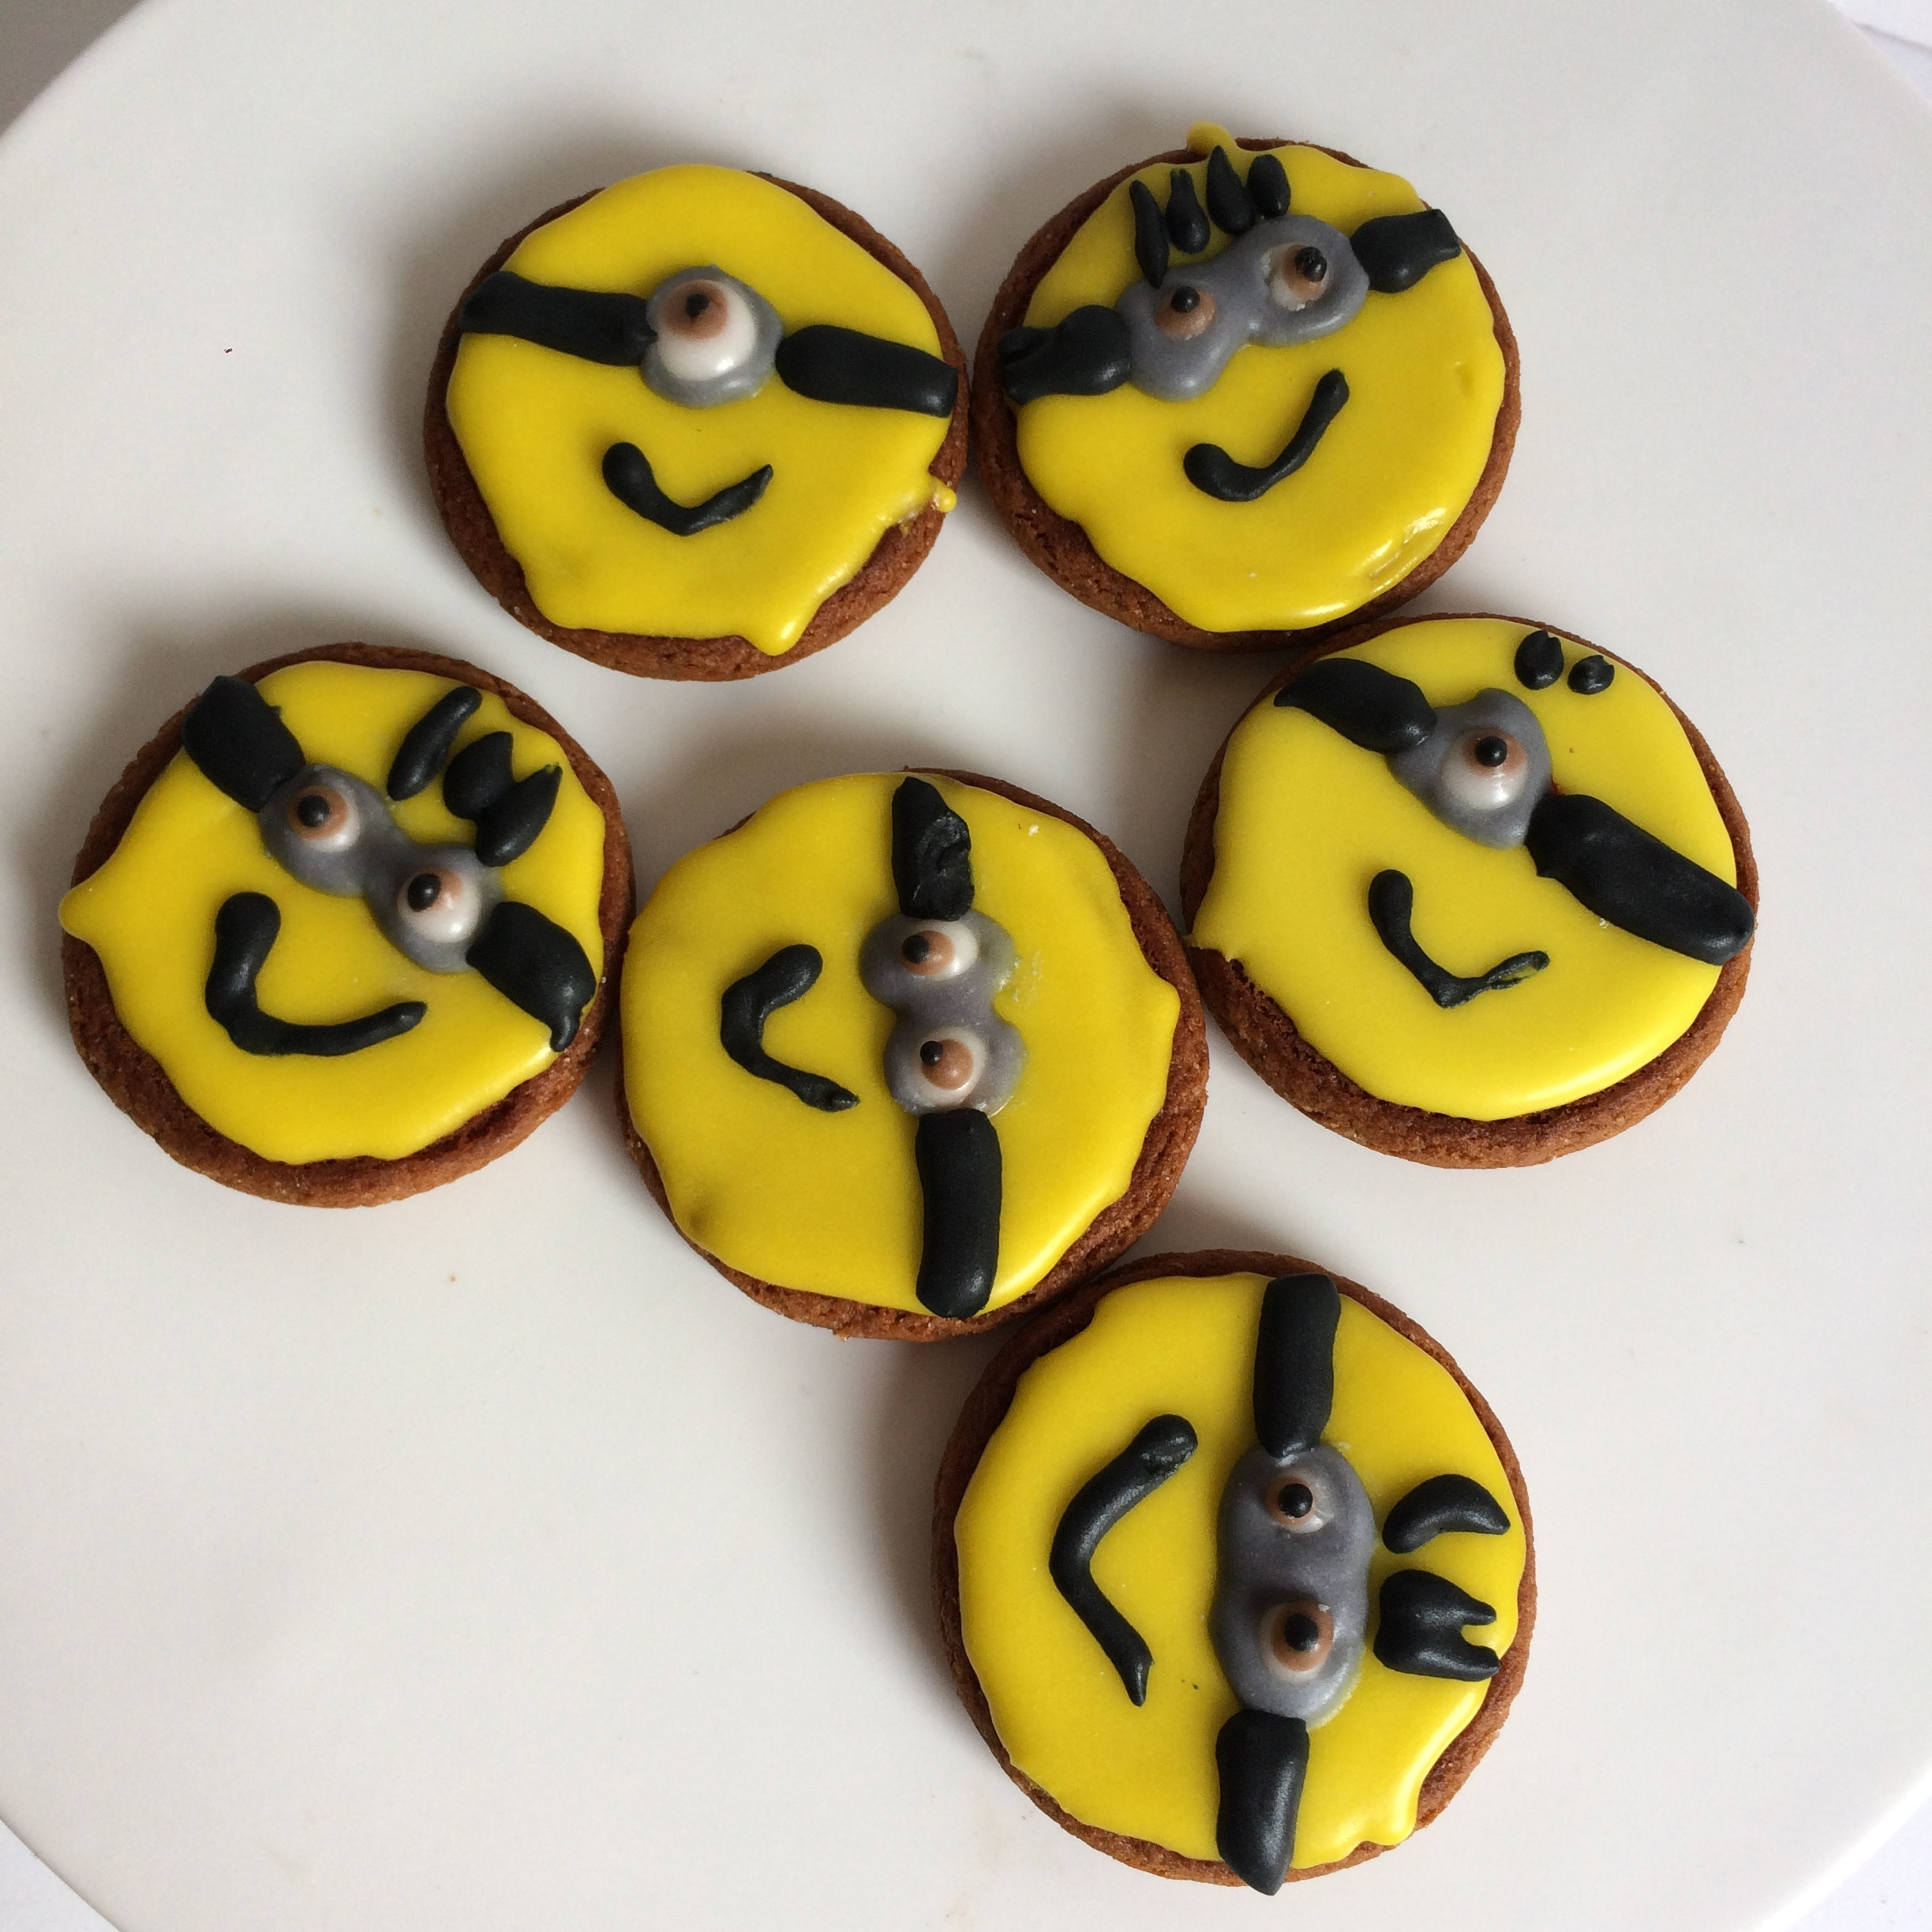 Max's Minion biscuits